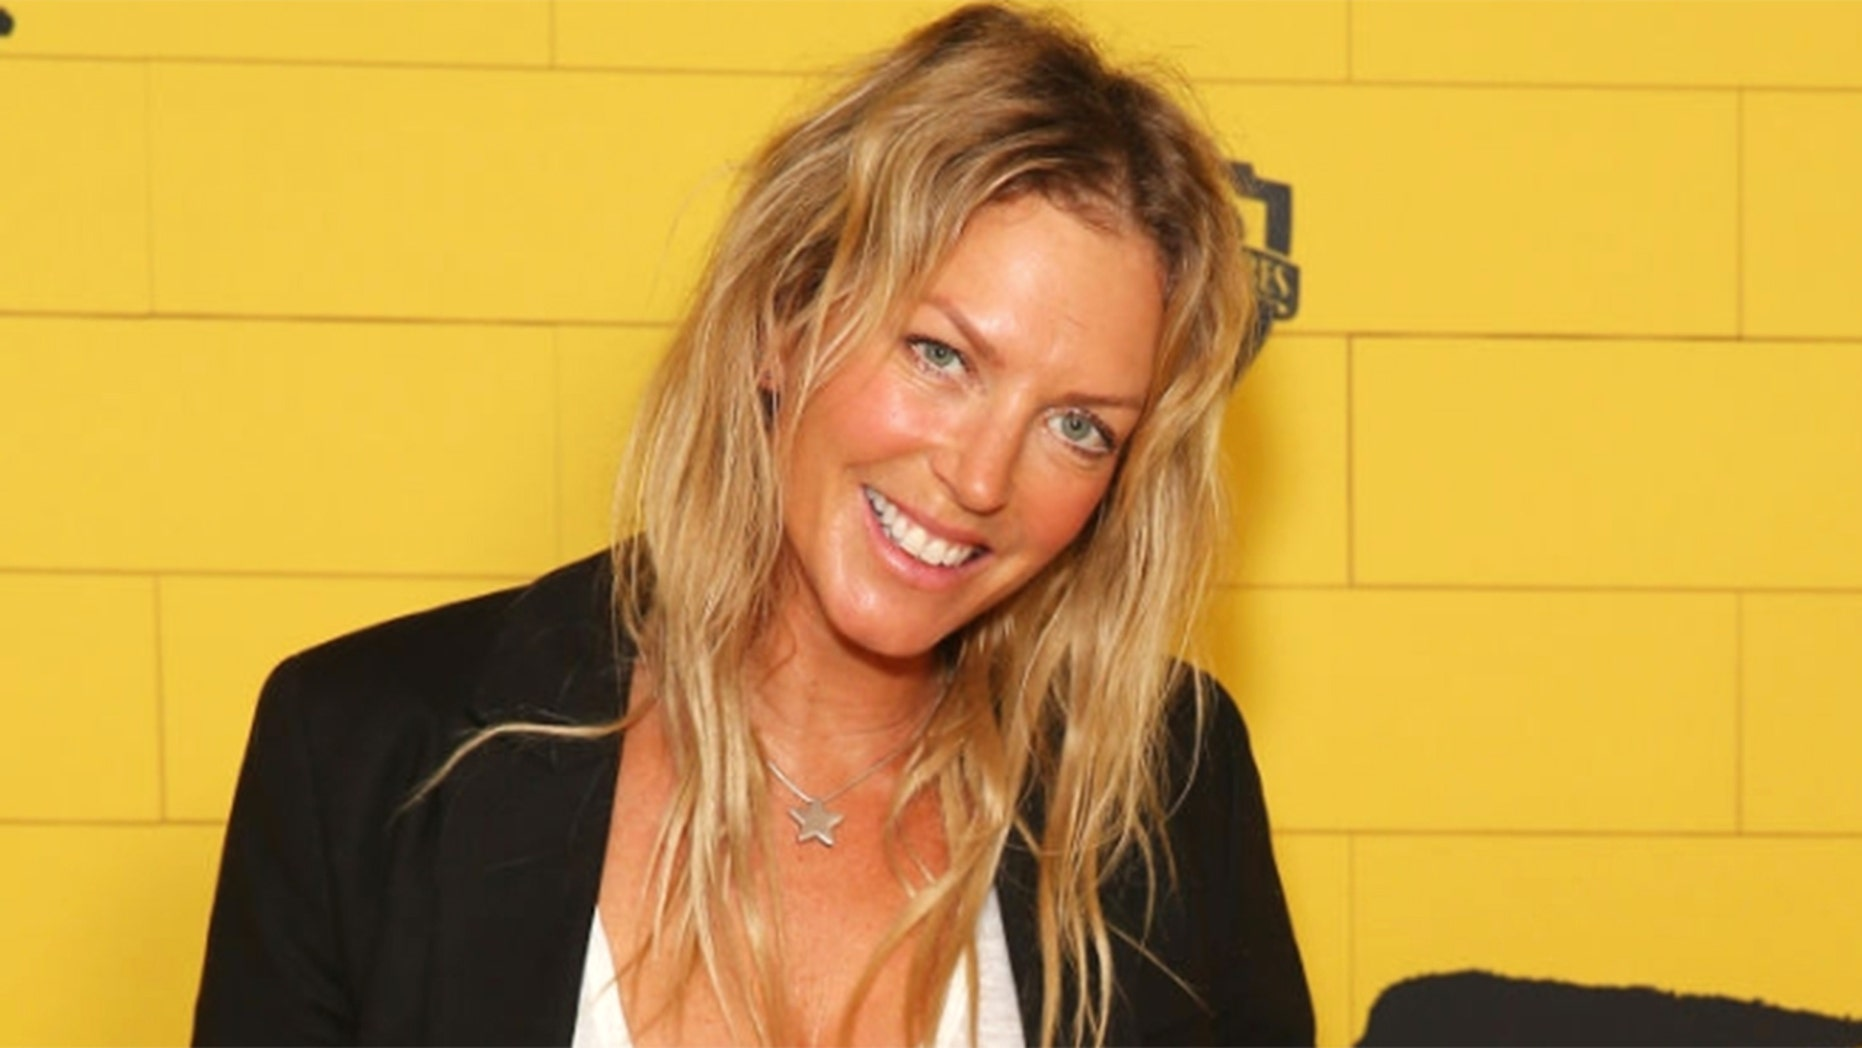 Australian model Annalise Braakensiek found dead in Sydney unit